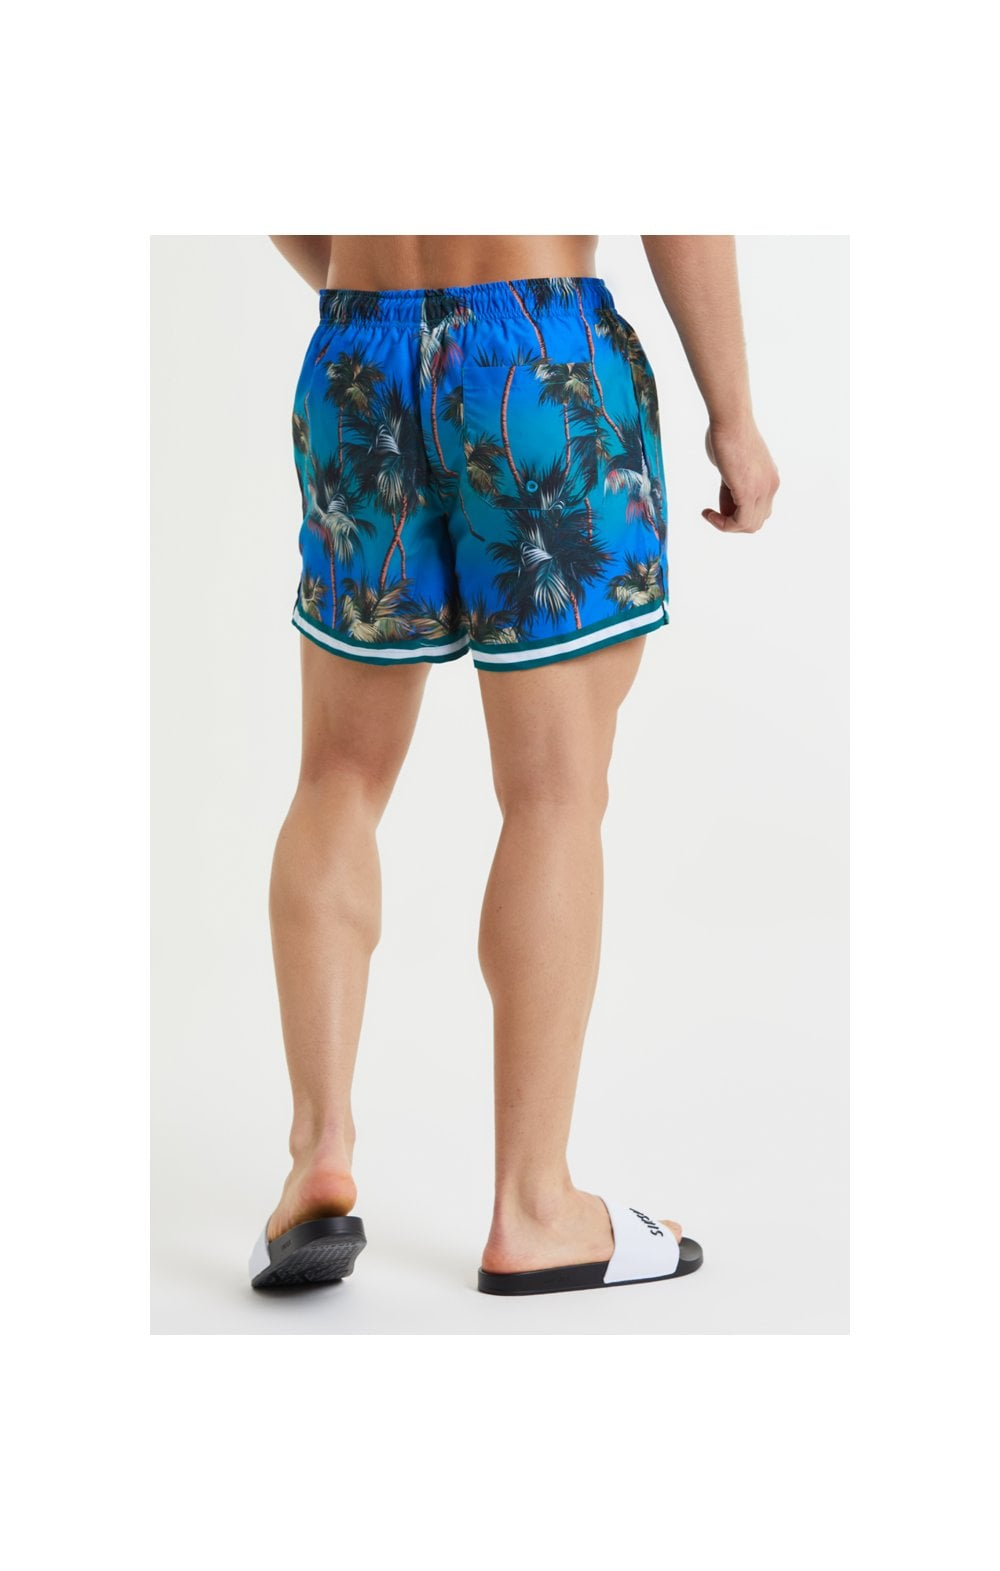 SikSilk Palm Swim Shorts - Blue & Green (4)